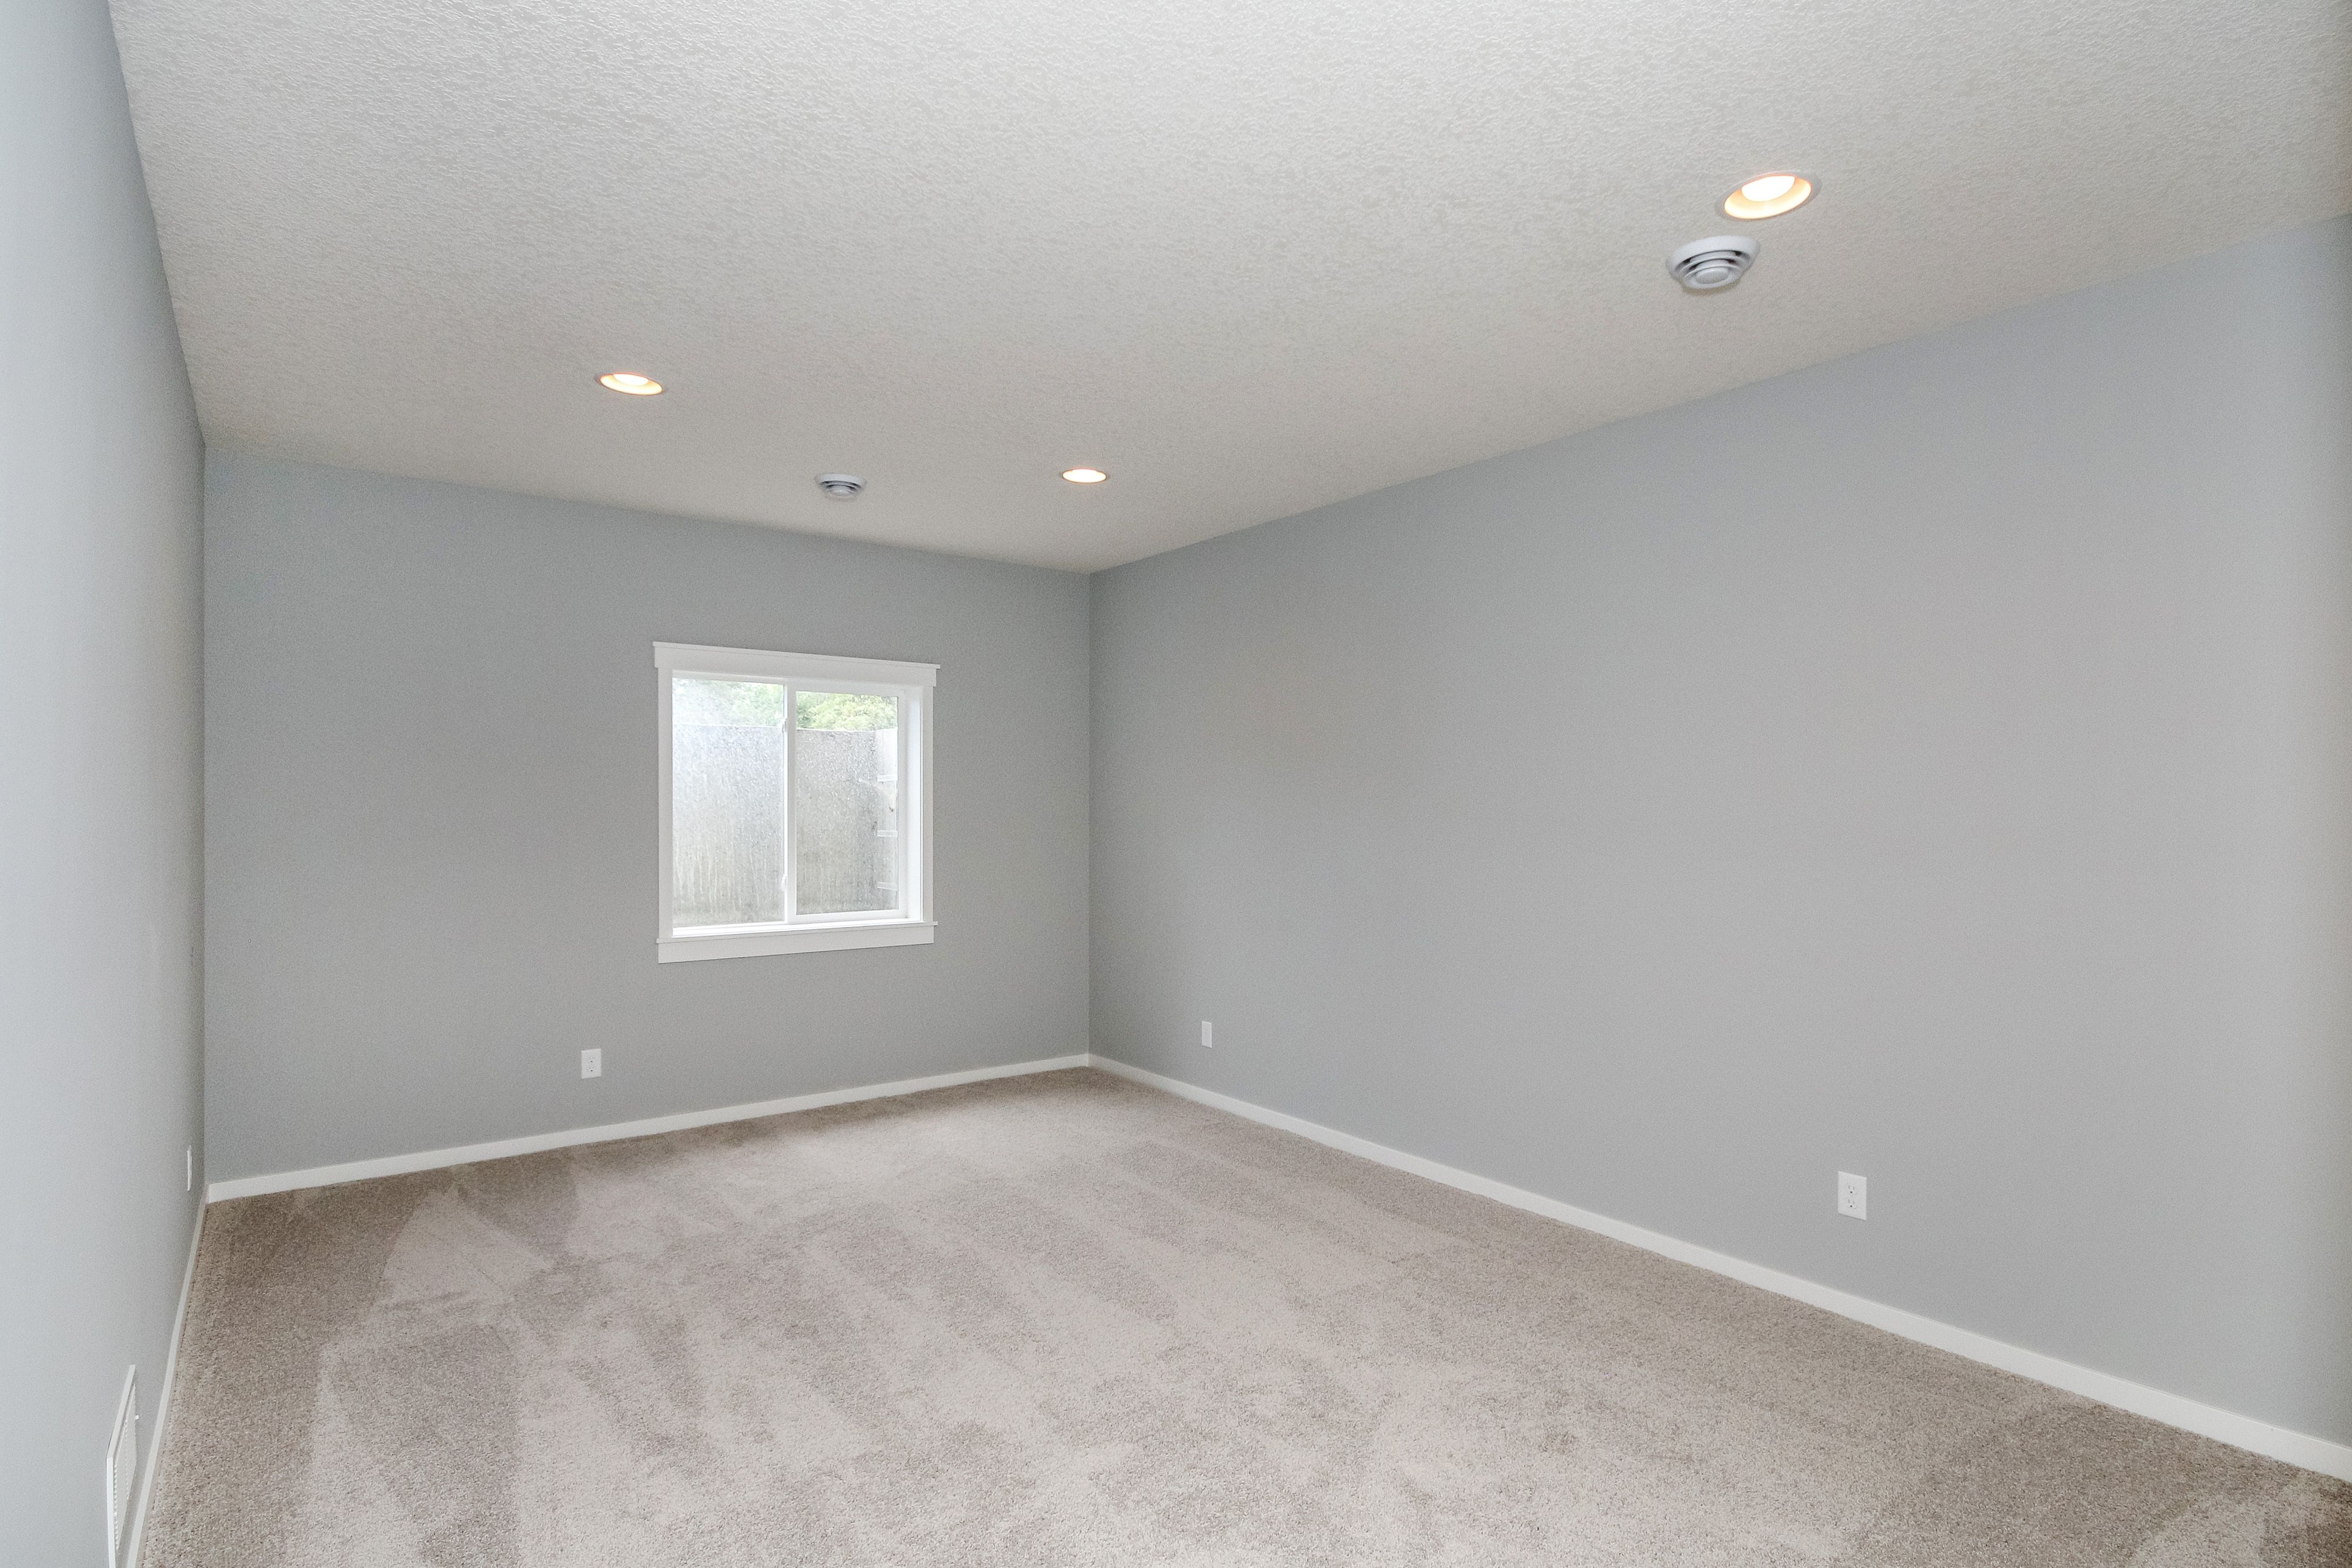 Upstairs bedroom walls sherwin williams sw 0055 light for Light grey paint colors